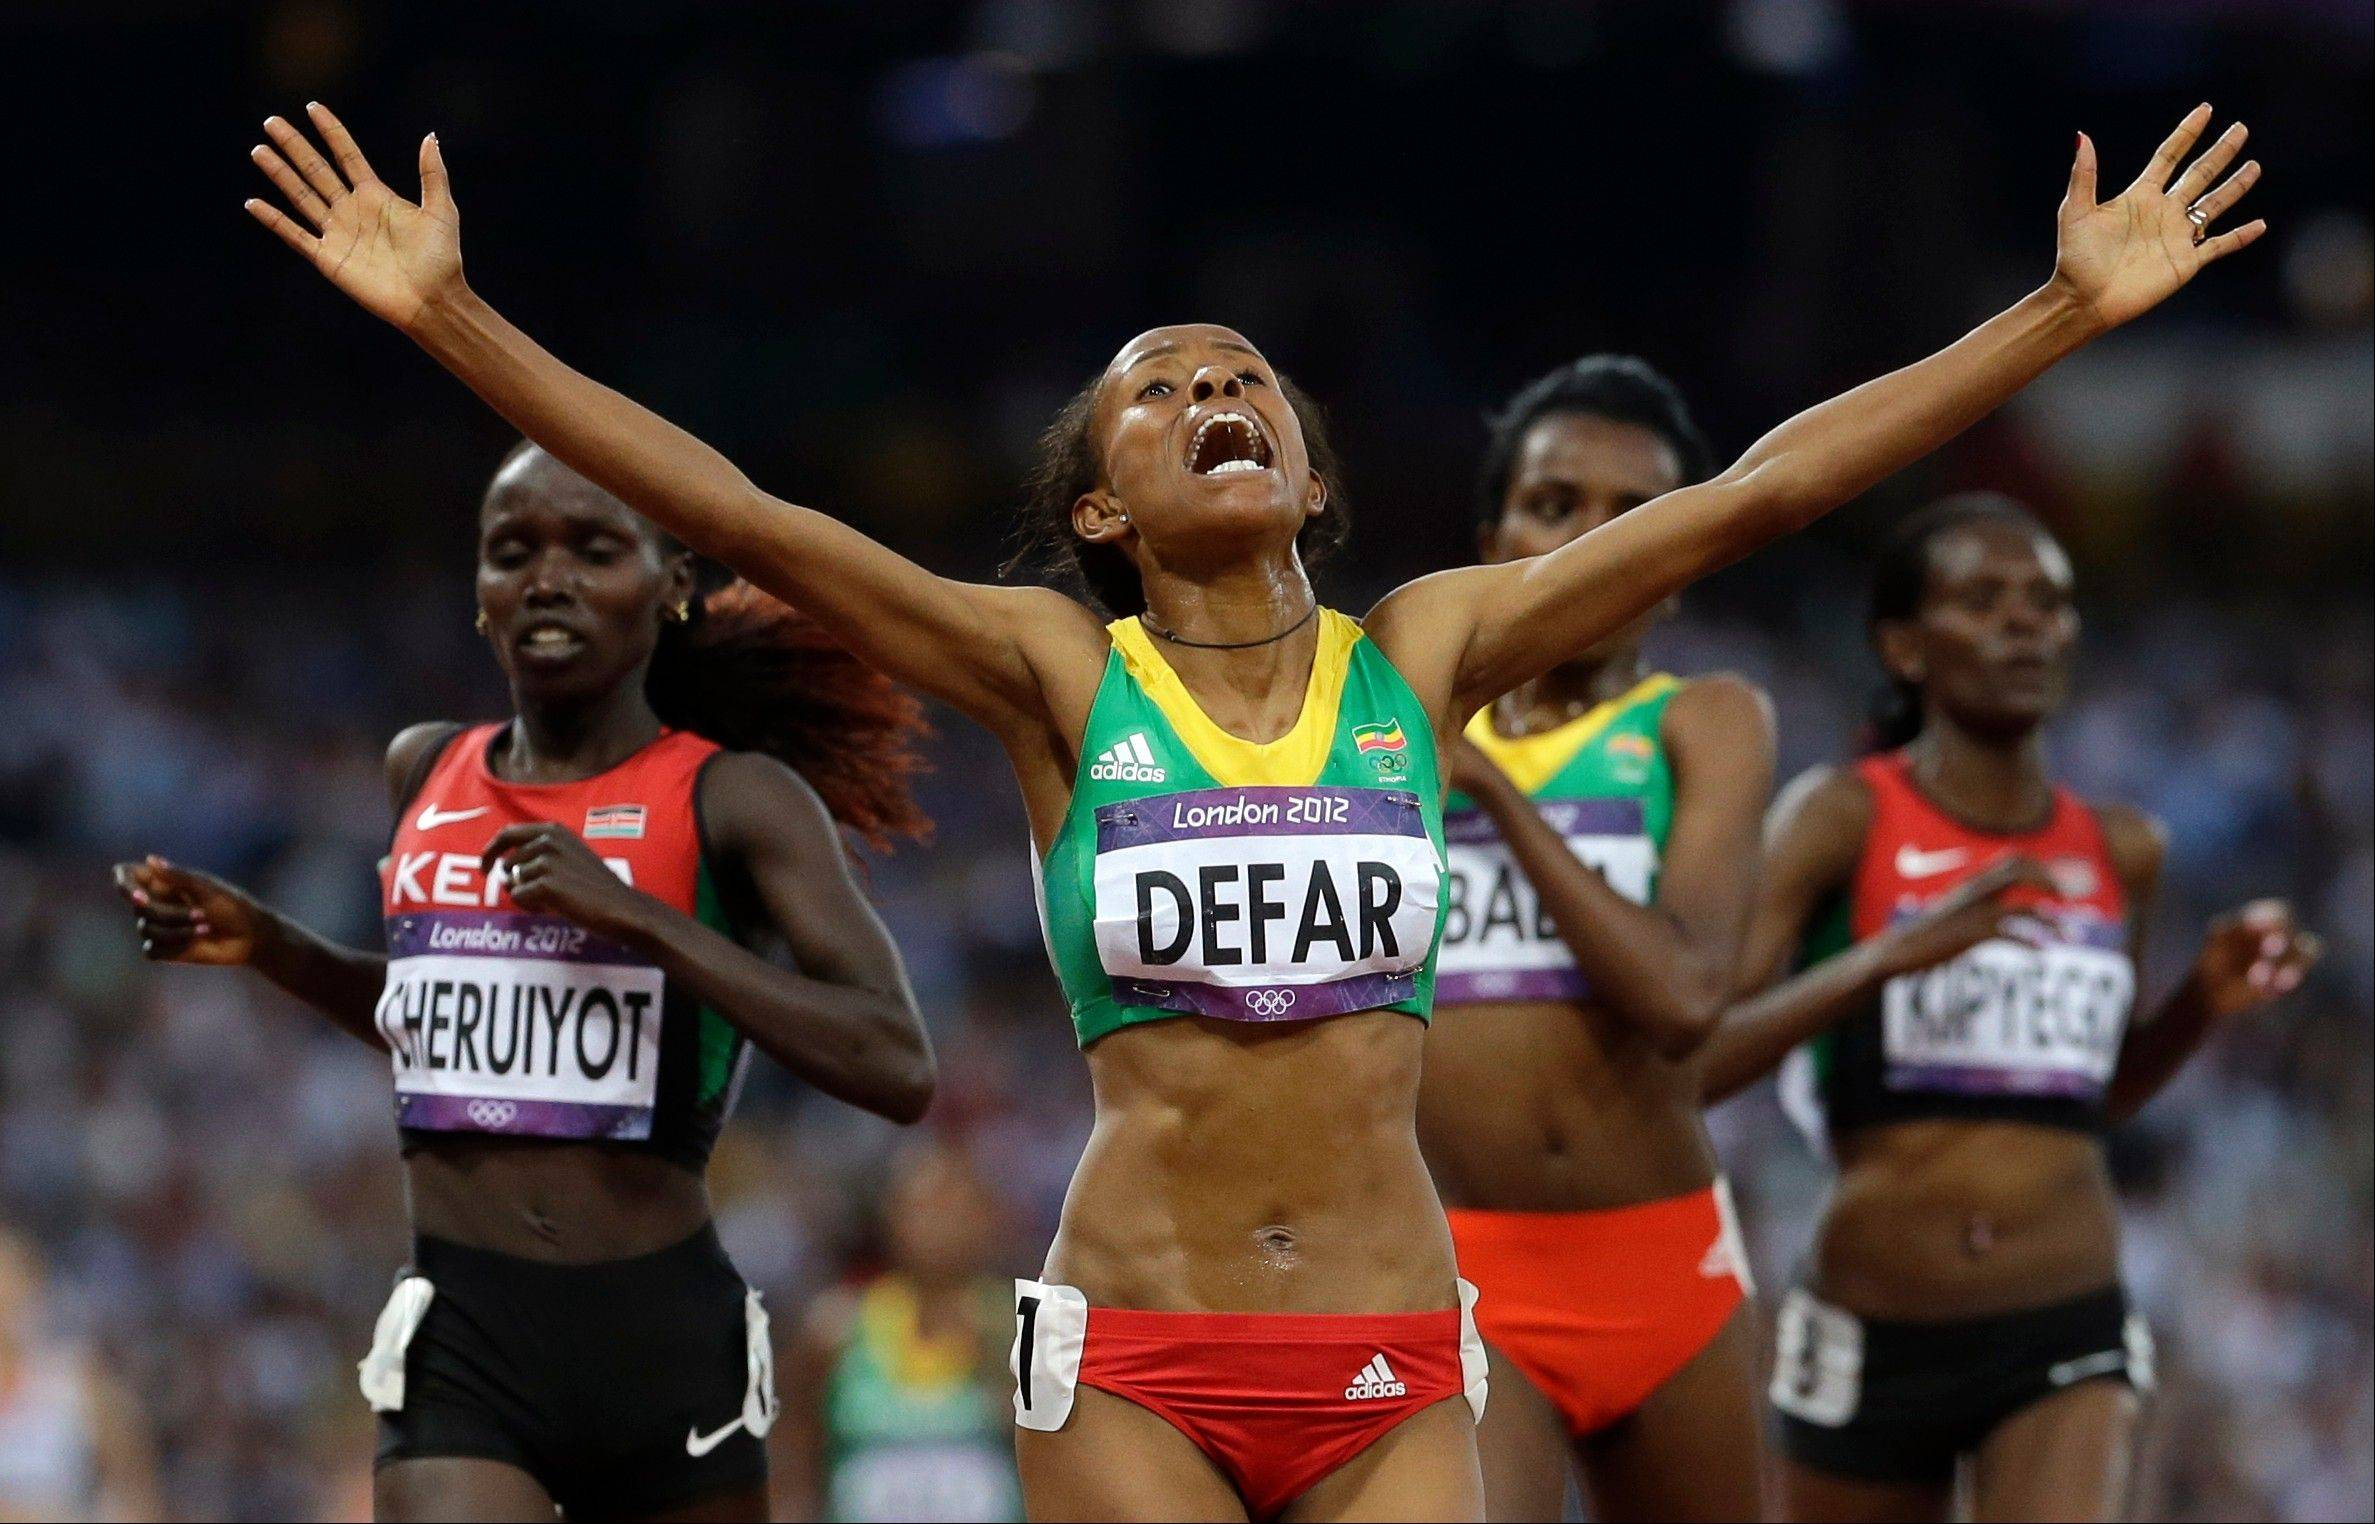 Ethiopia's Meseret Defar reacts as she crosses the finish line to win the 5000-meter final during the athletics in the Olympic Stadium at the 2012 Summer Olympics, London, Friday, Aug. 10, 2012.